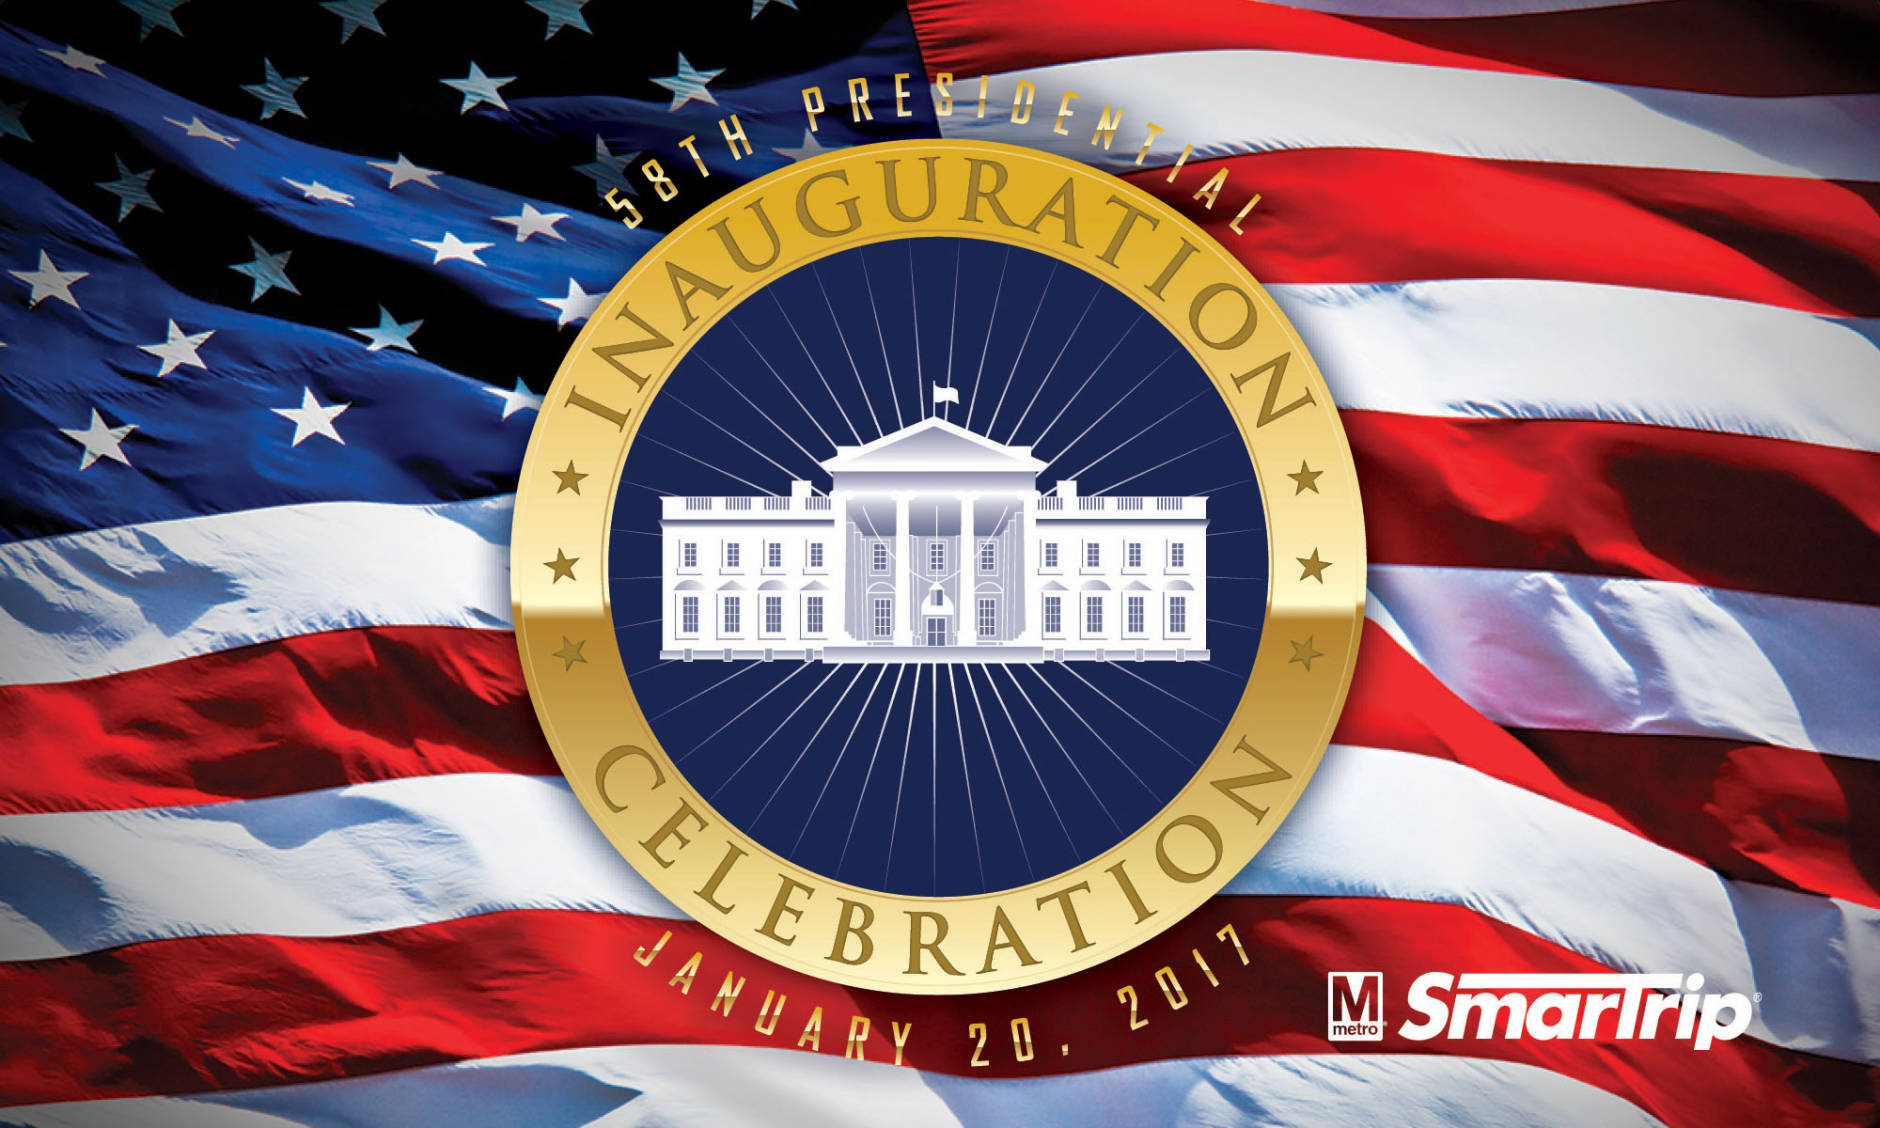 Metro is now selling special-edition versions of its SmarTrip payment cards to commemorate the upcoming presidential inauguration. (Courtesy WMATA)